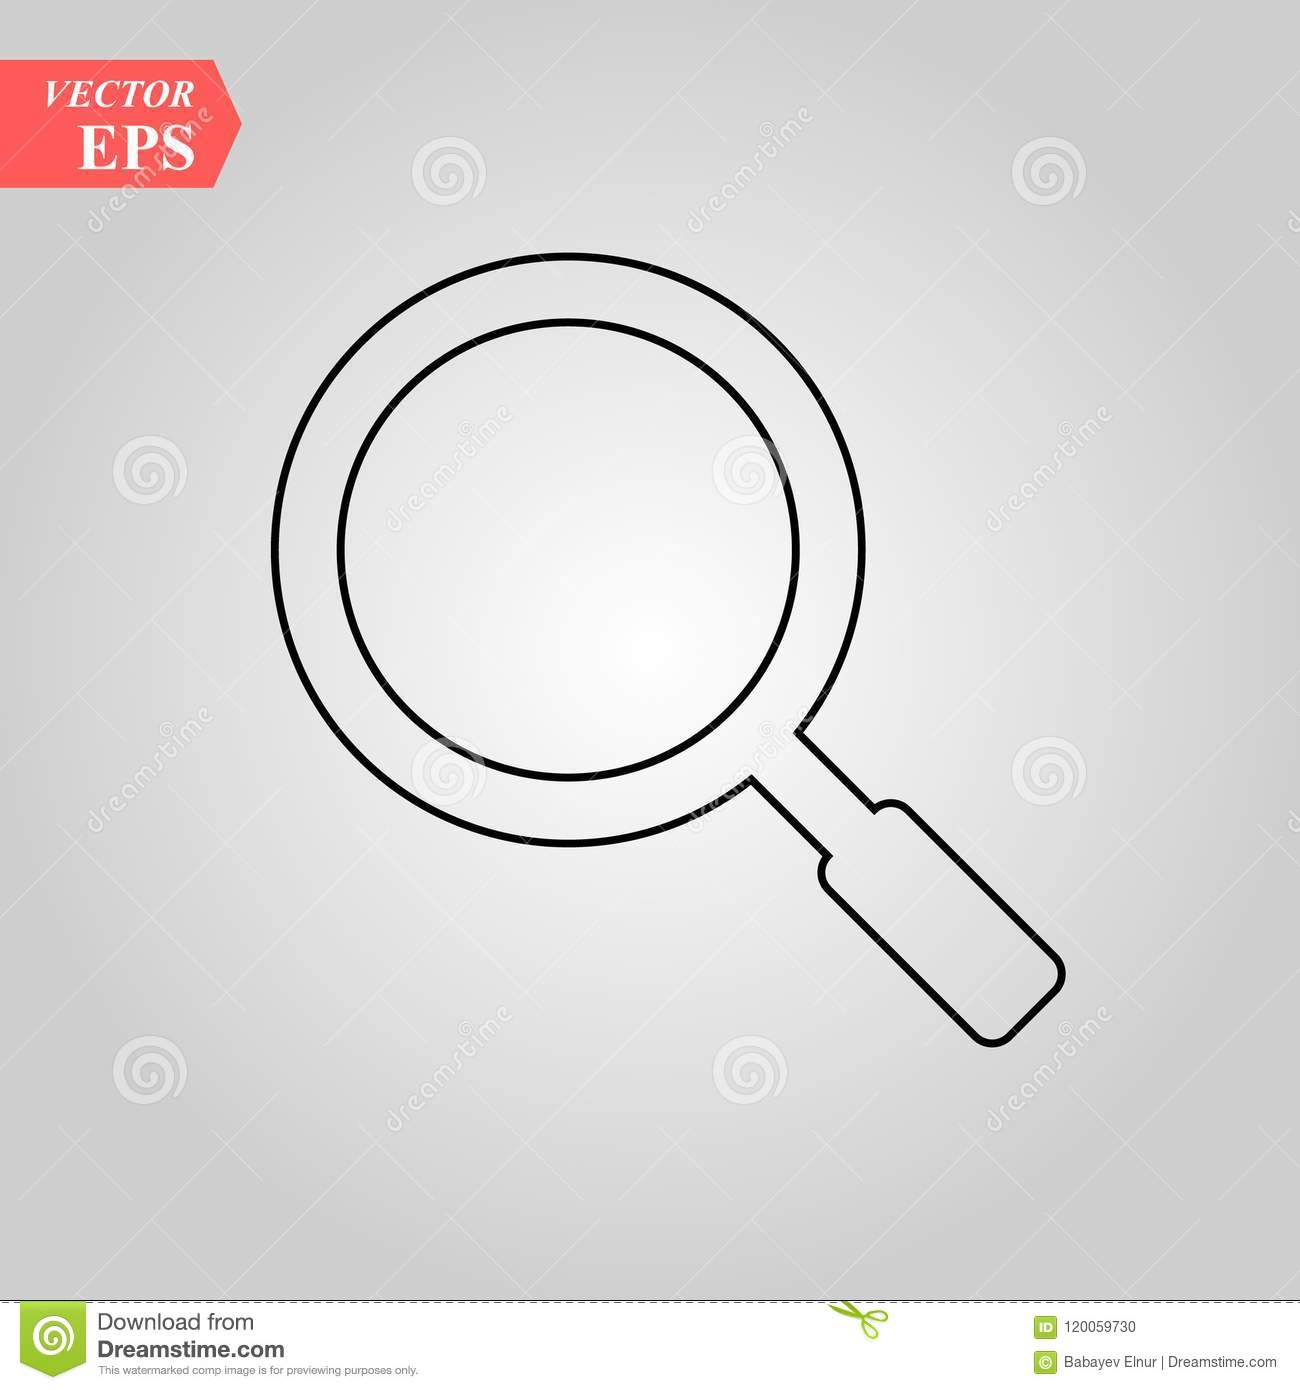 Magnifying glass line icon, outline vector sign, linear style pictogram isolated on white. Search, find symbol, logo